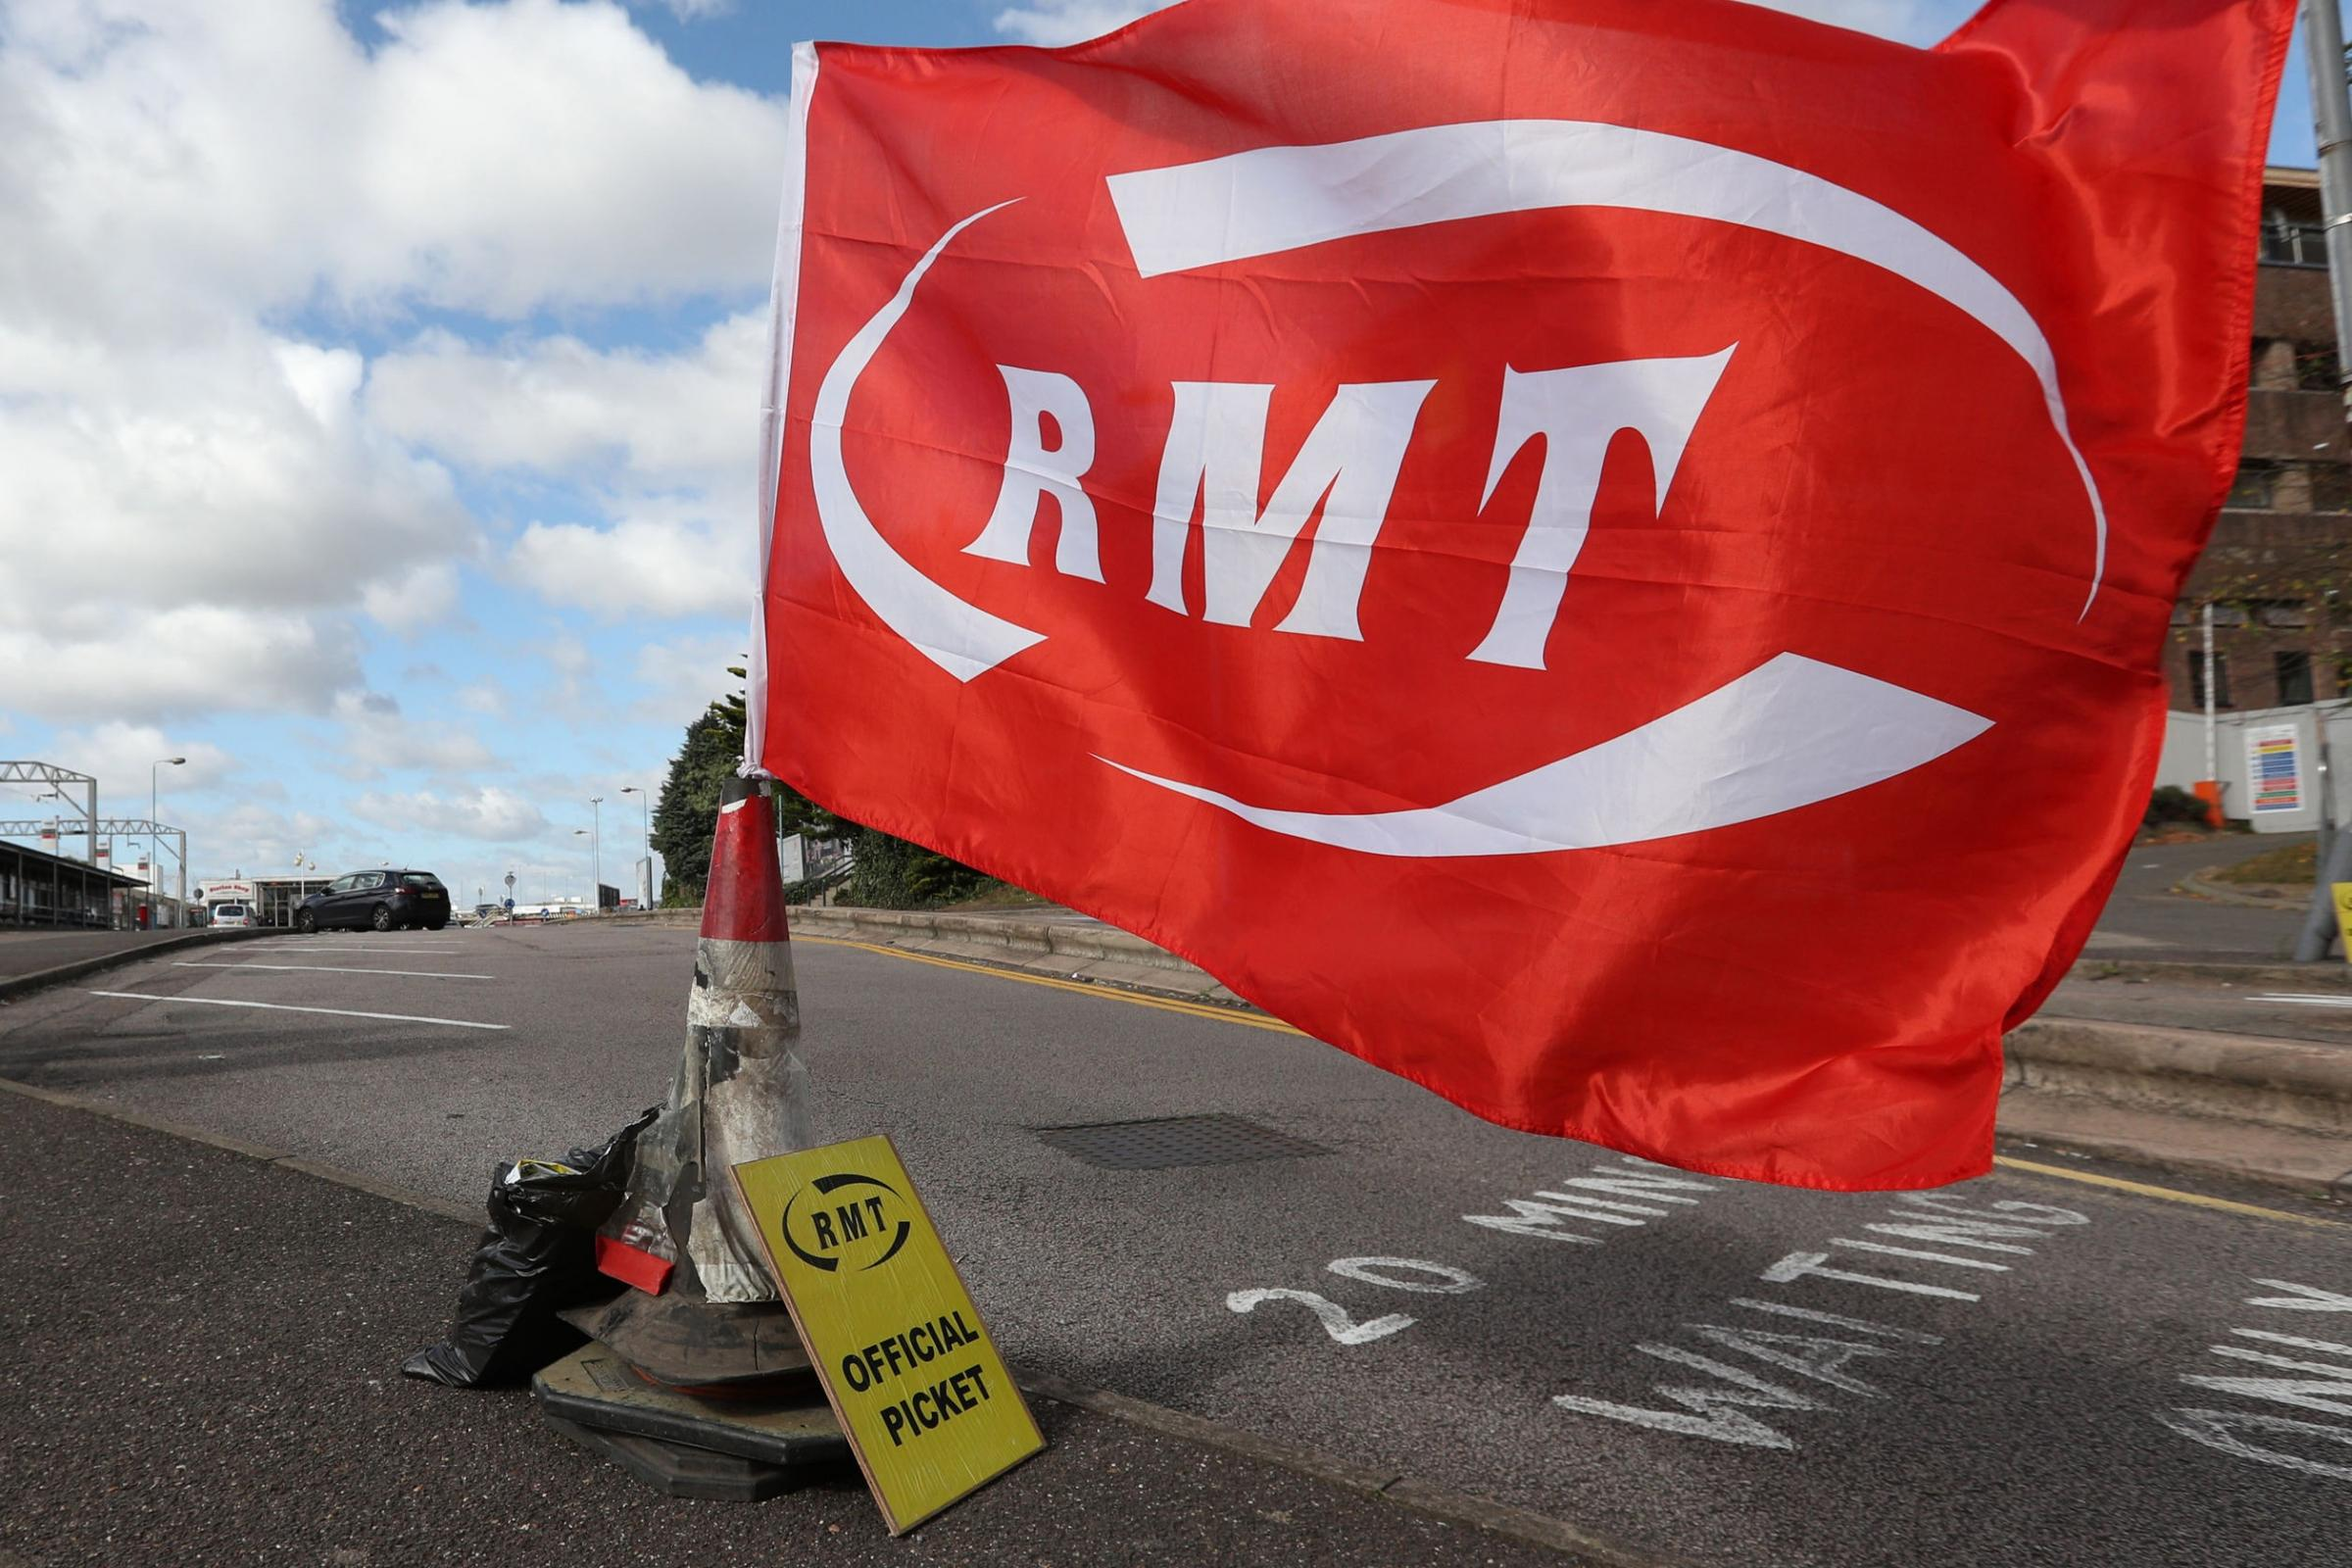 More Northern rail strikes